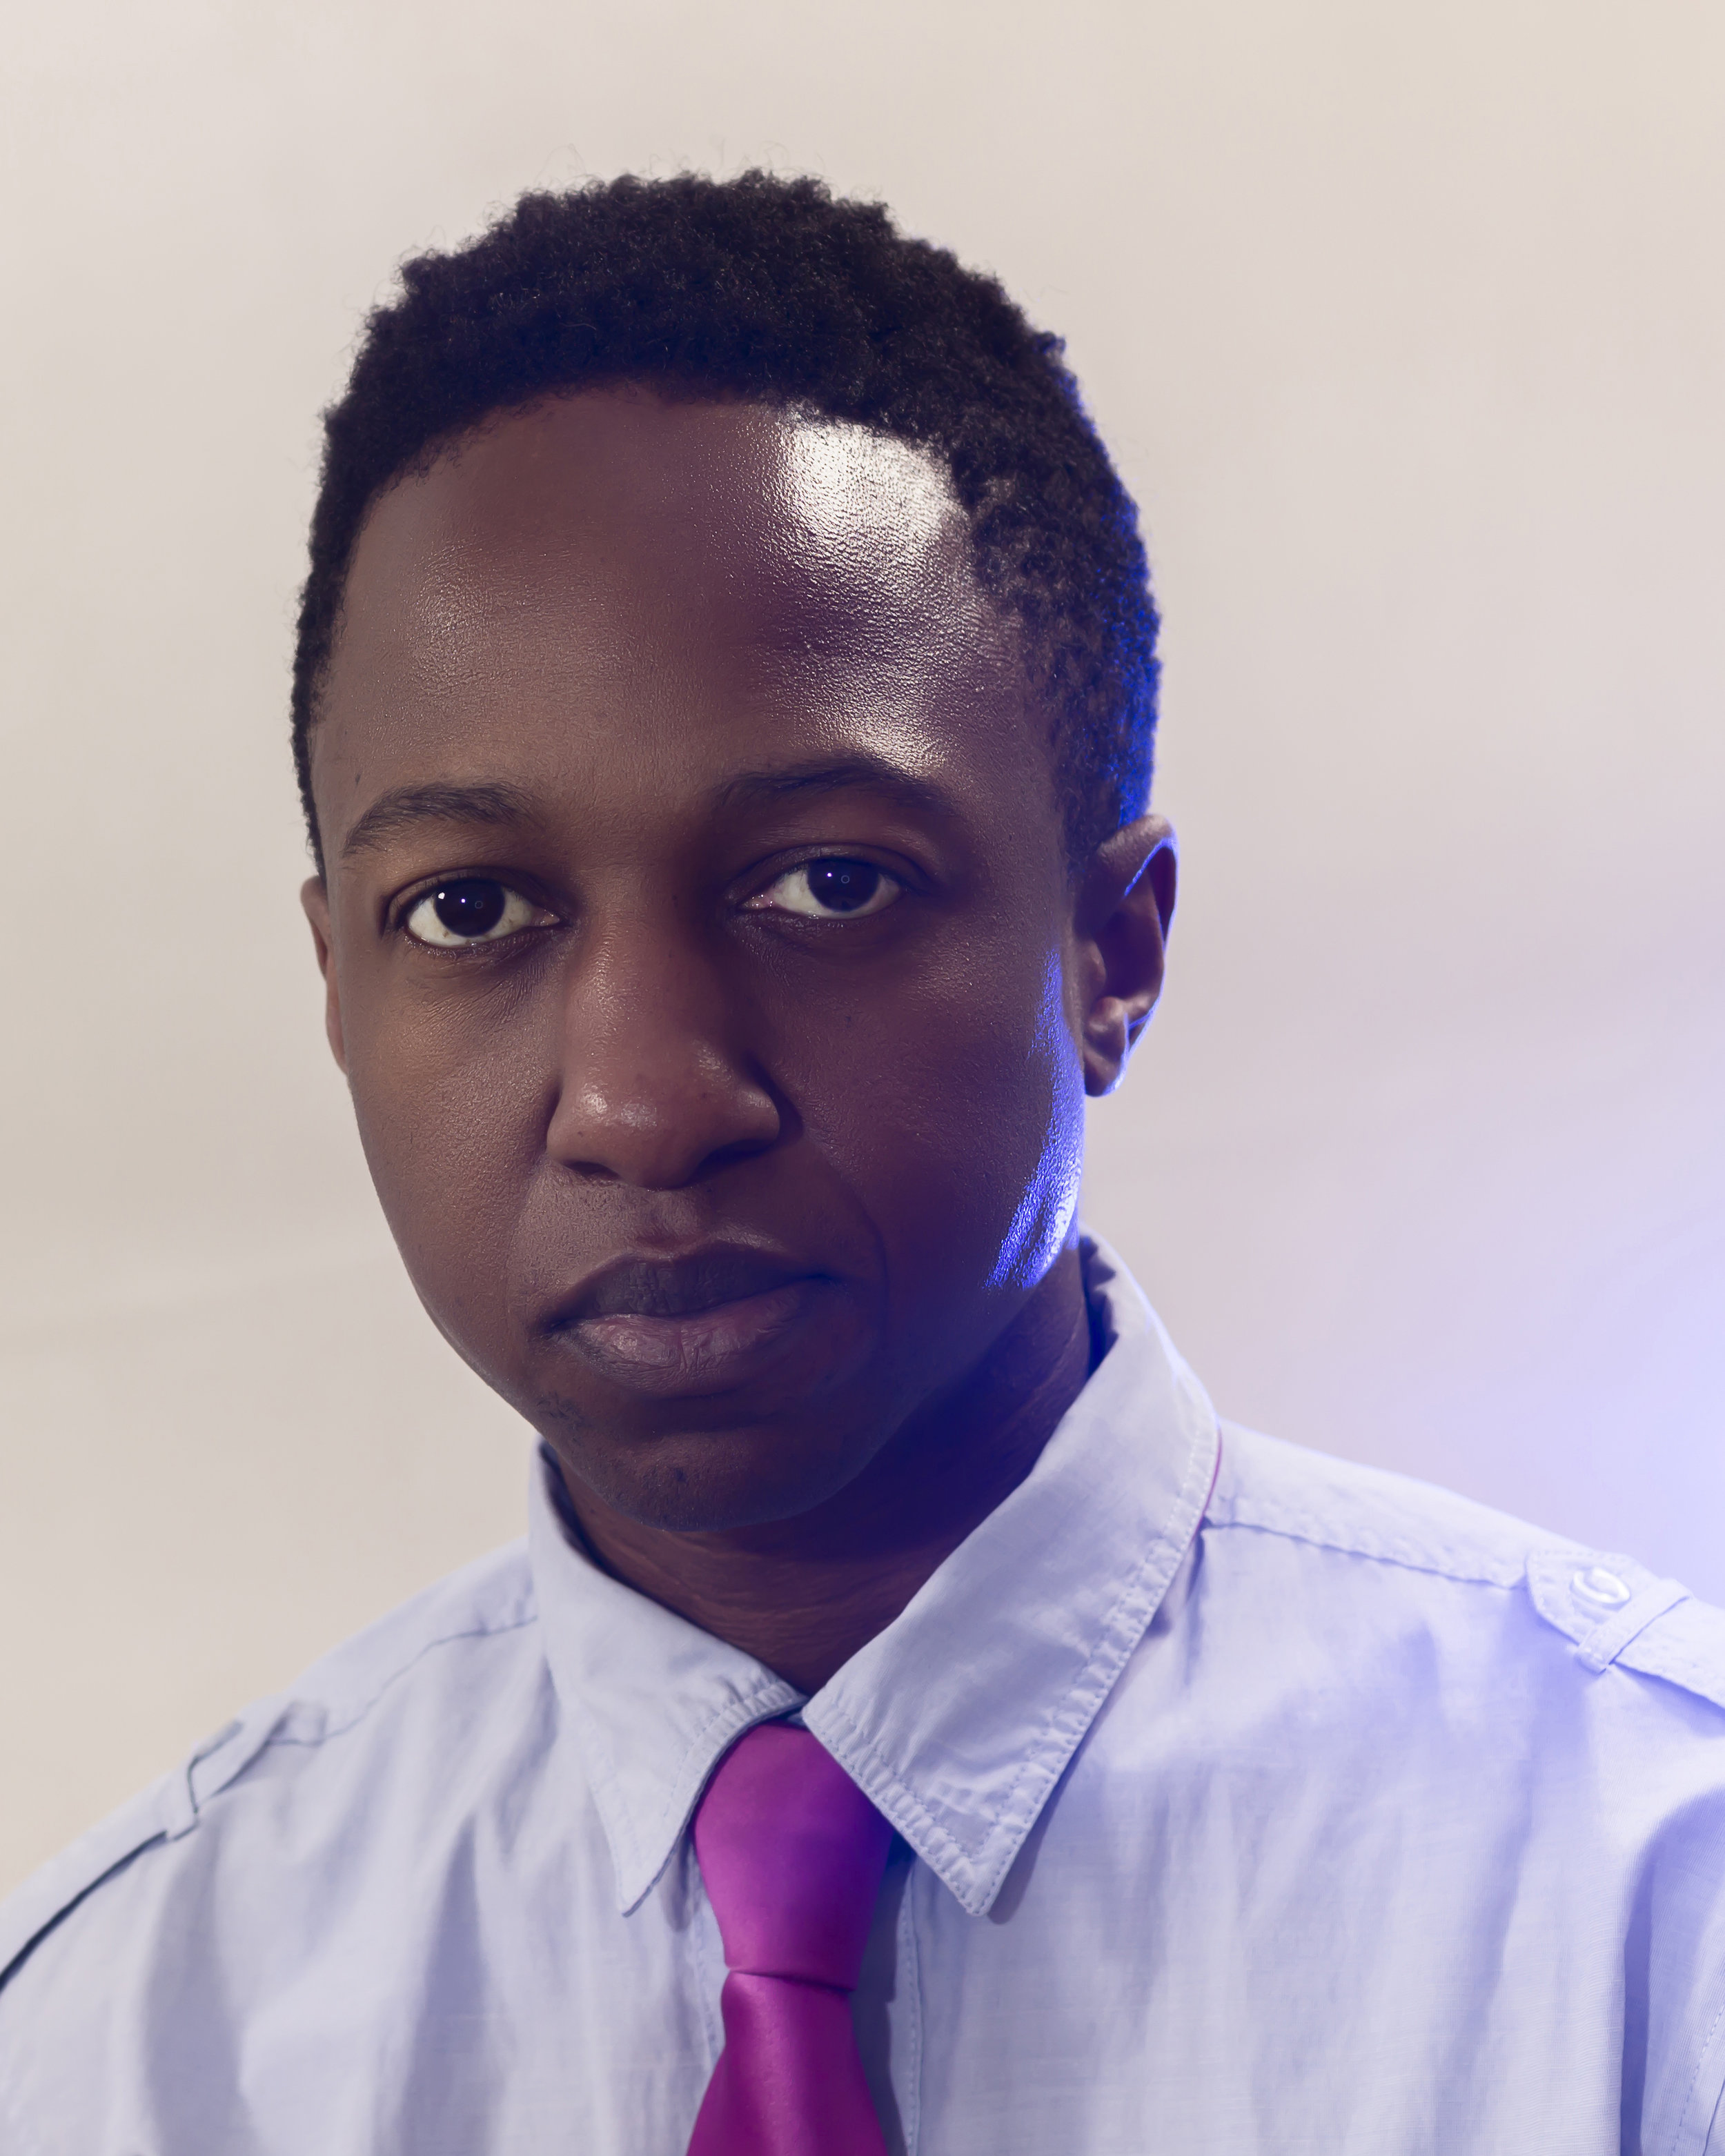 Dumi's Head Shots - 01-02-18_15_1.jpg